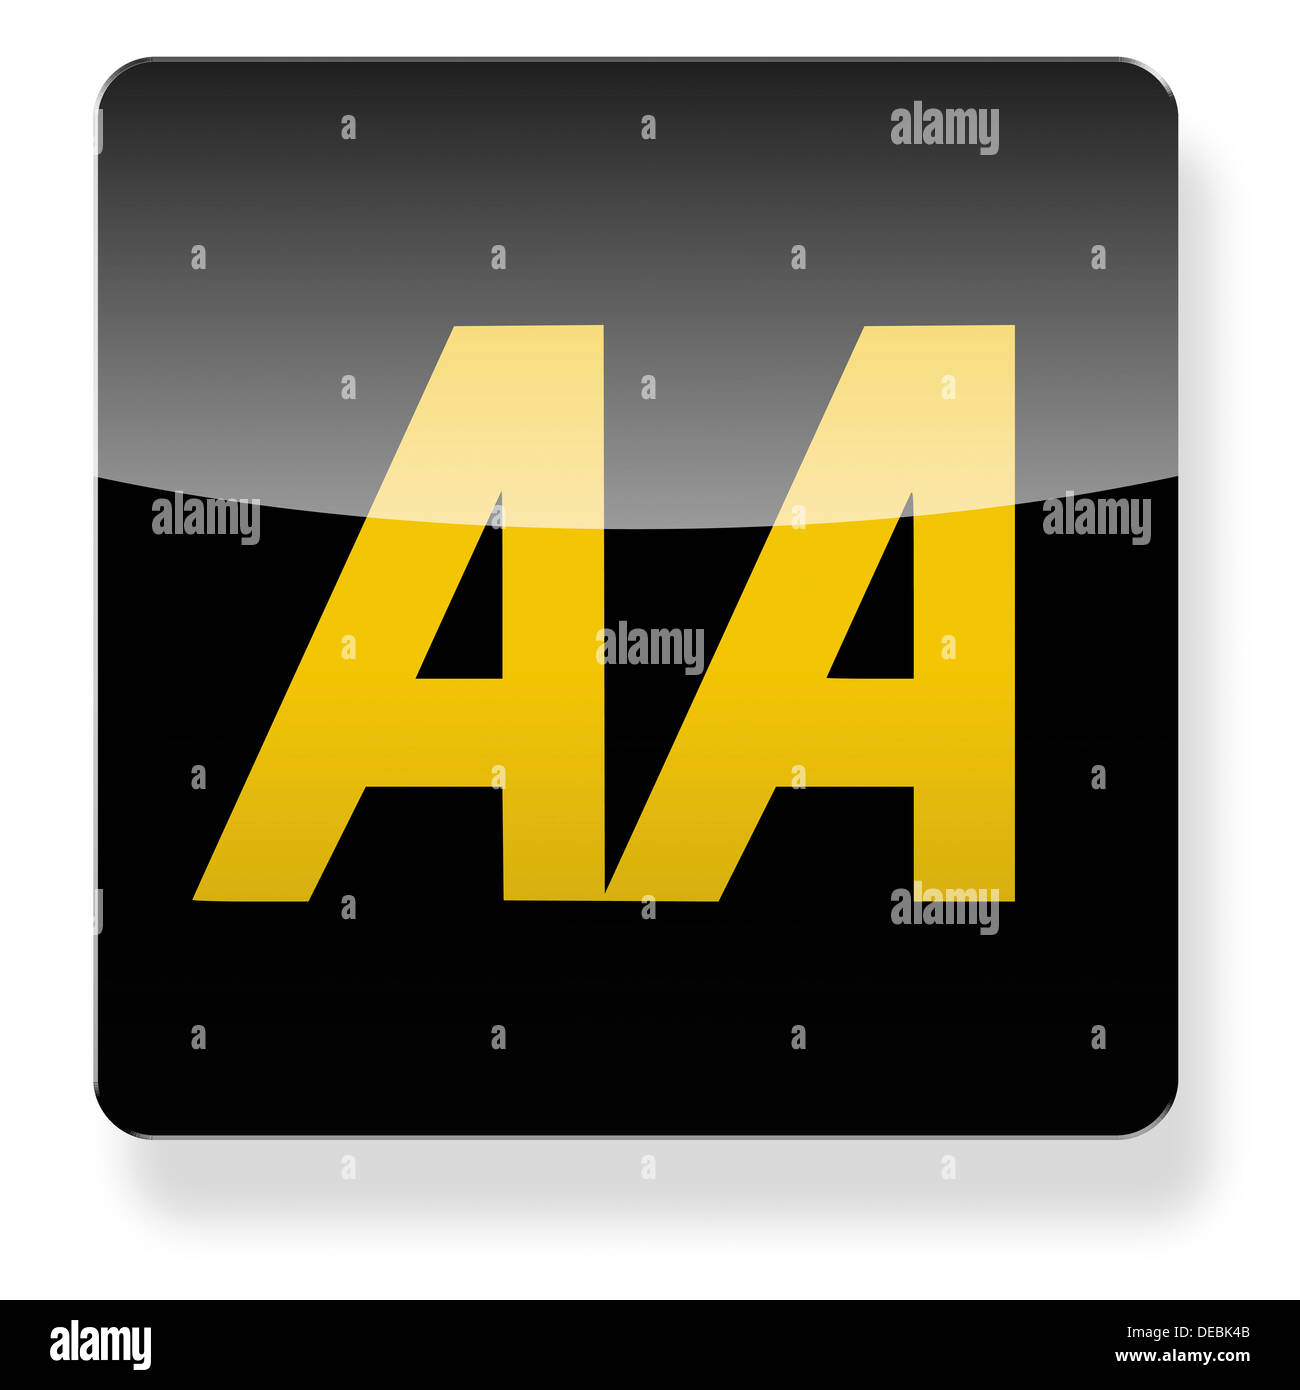 AA Automobile Association logo as an app icon. Clipping path included. - Stock Image